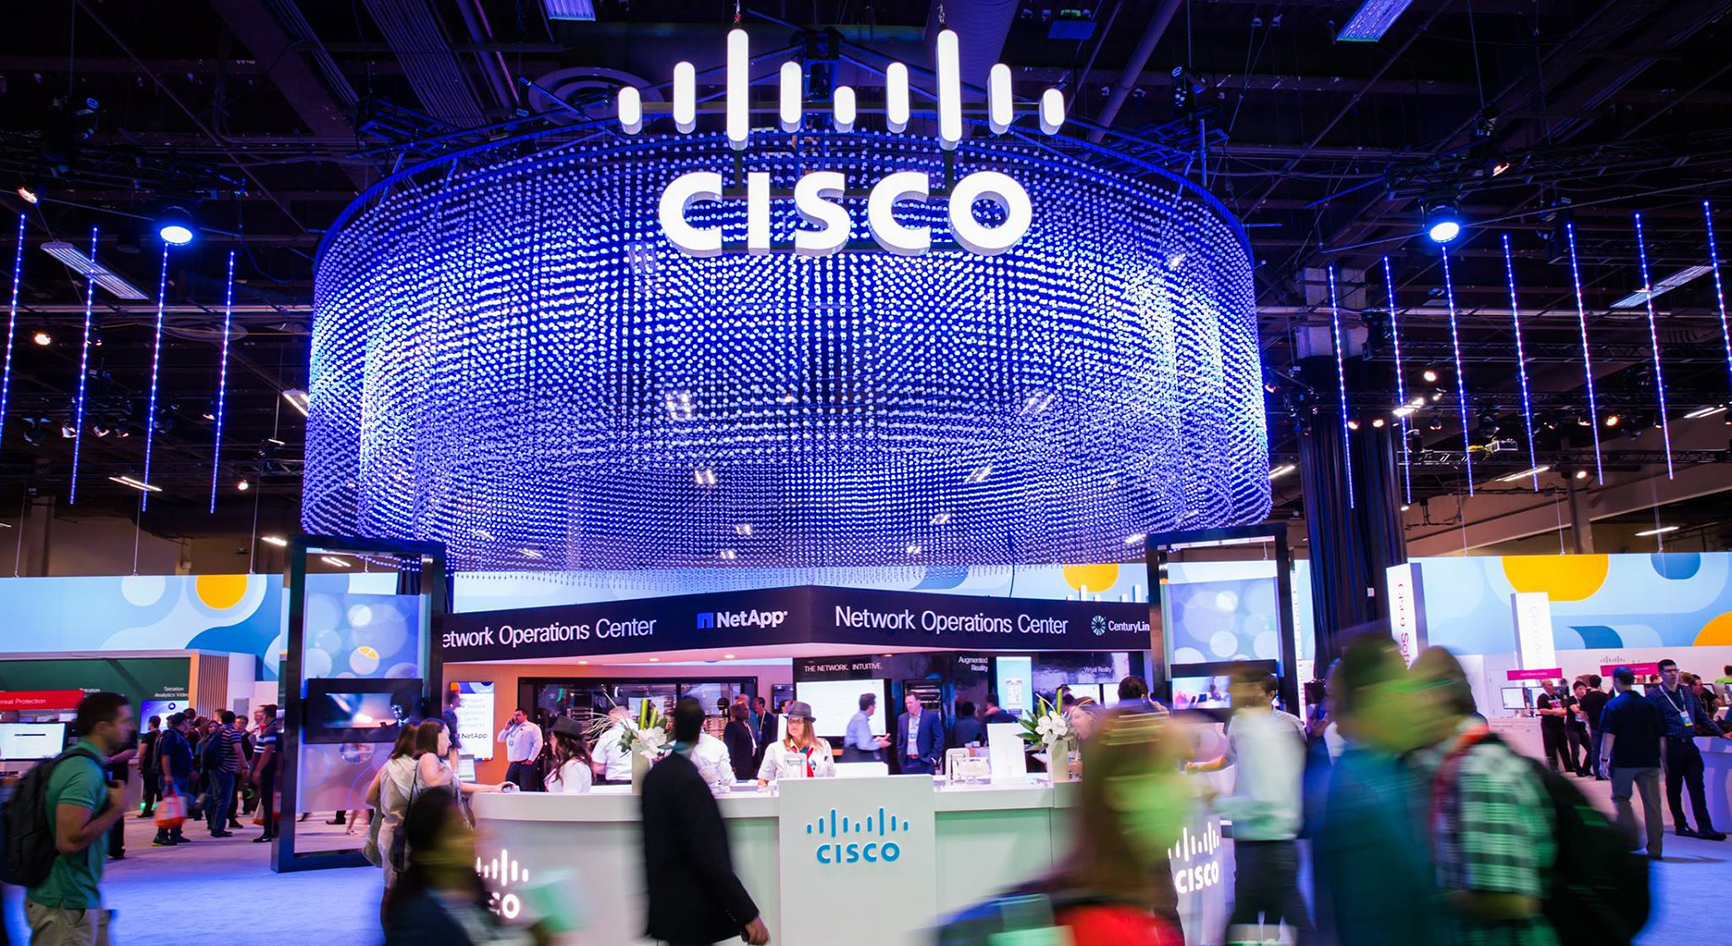 Cisco introduces new training and developer programs